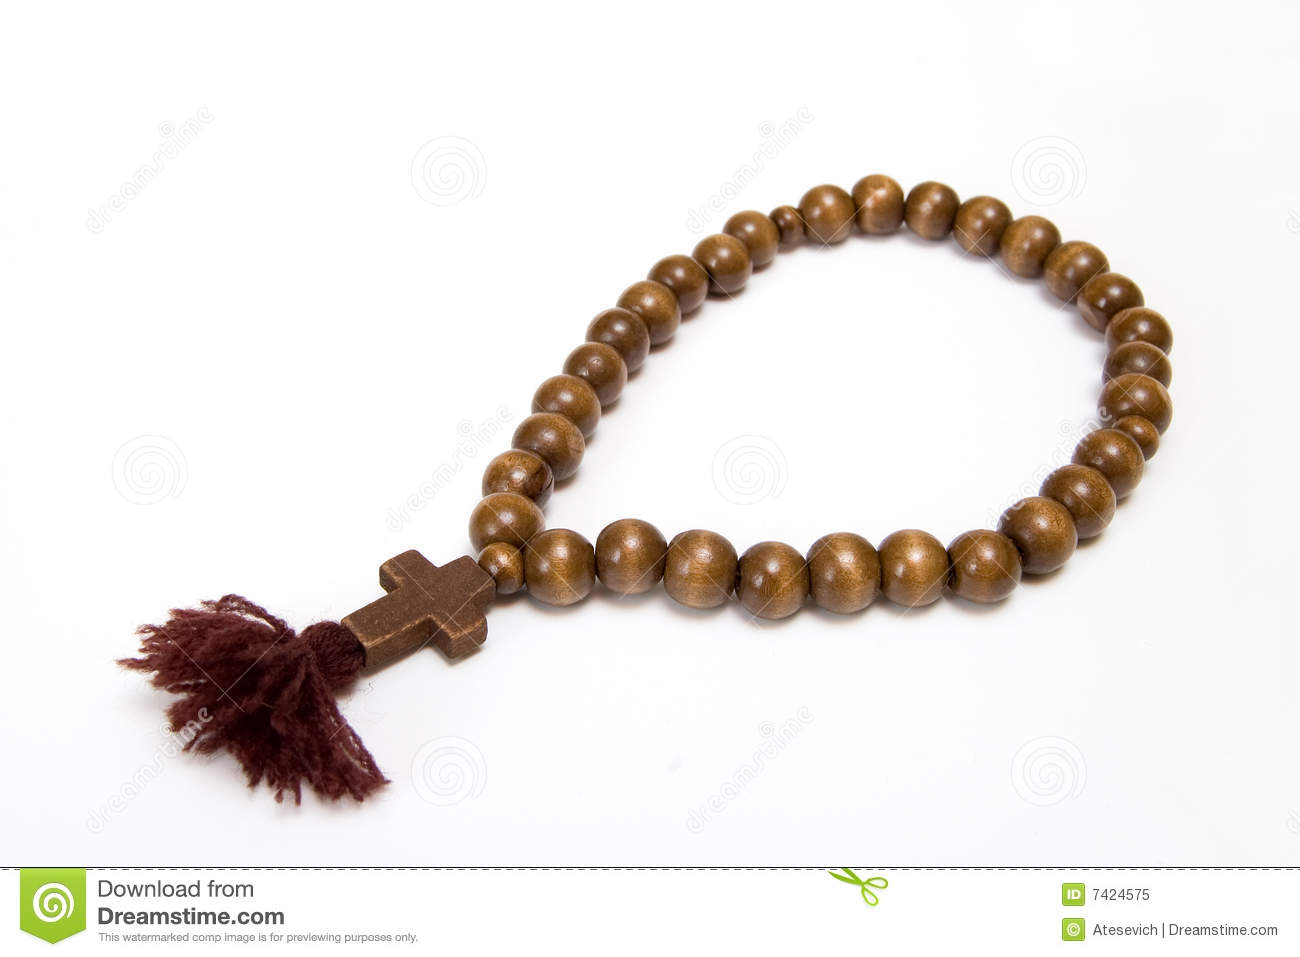 Images of Free Rosary Beads - #rock-cafe